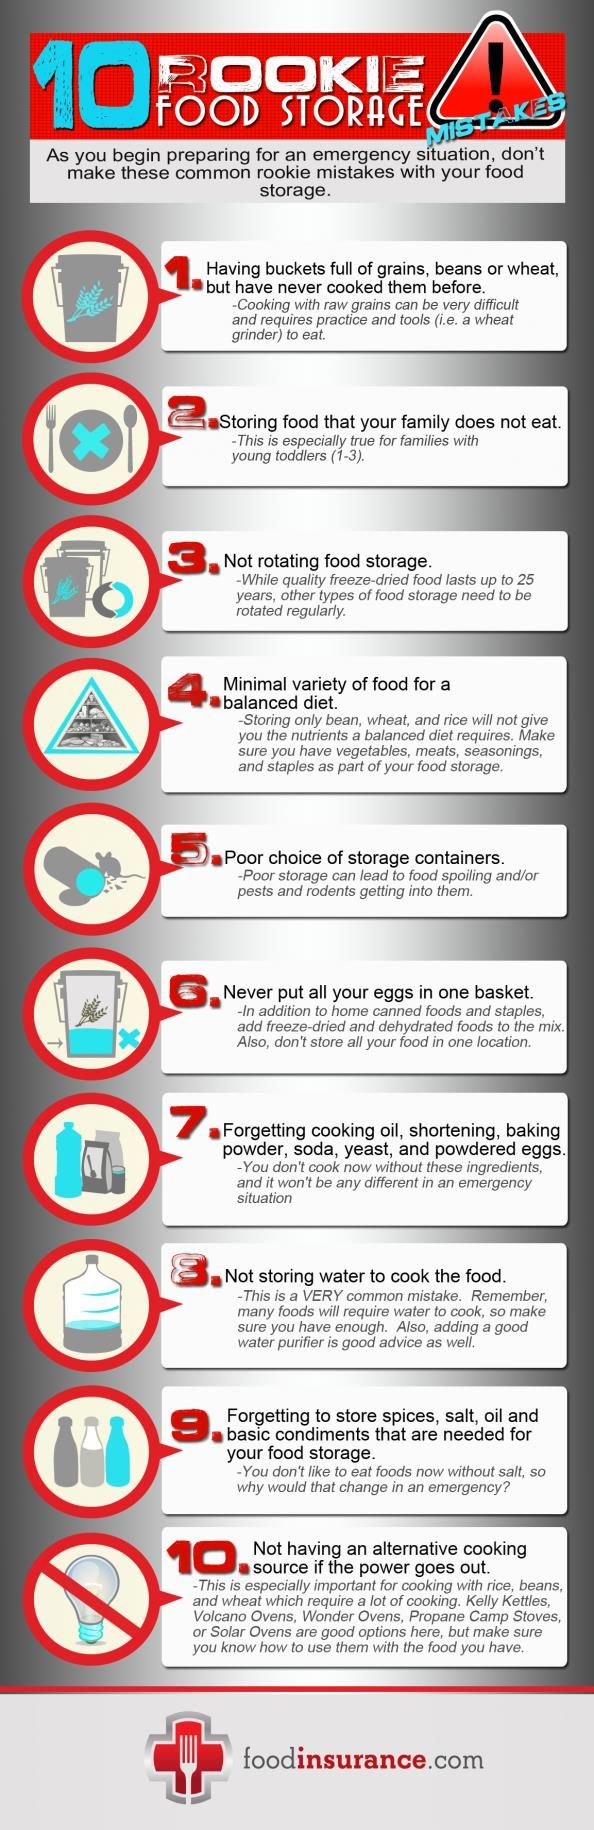 10 Rookie Food Storage Mistakes | Survival Prepping and Long Term Food Storage for Preparedness - Survival Life Blog: survivallife.com #survivallife #foodstorage #survival #prepping